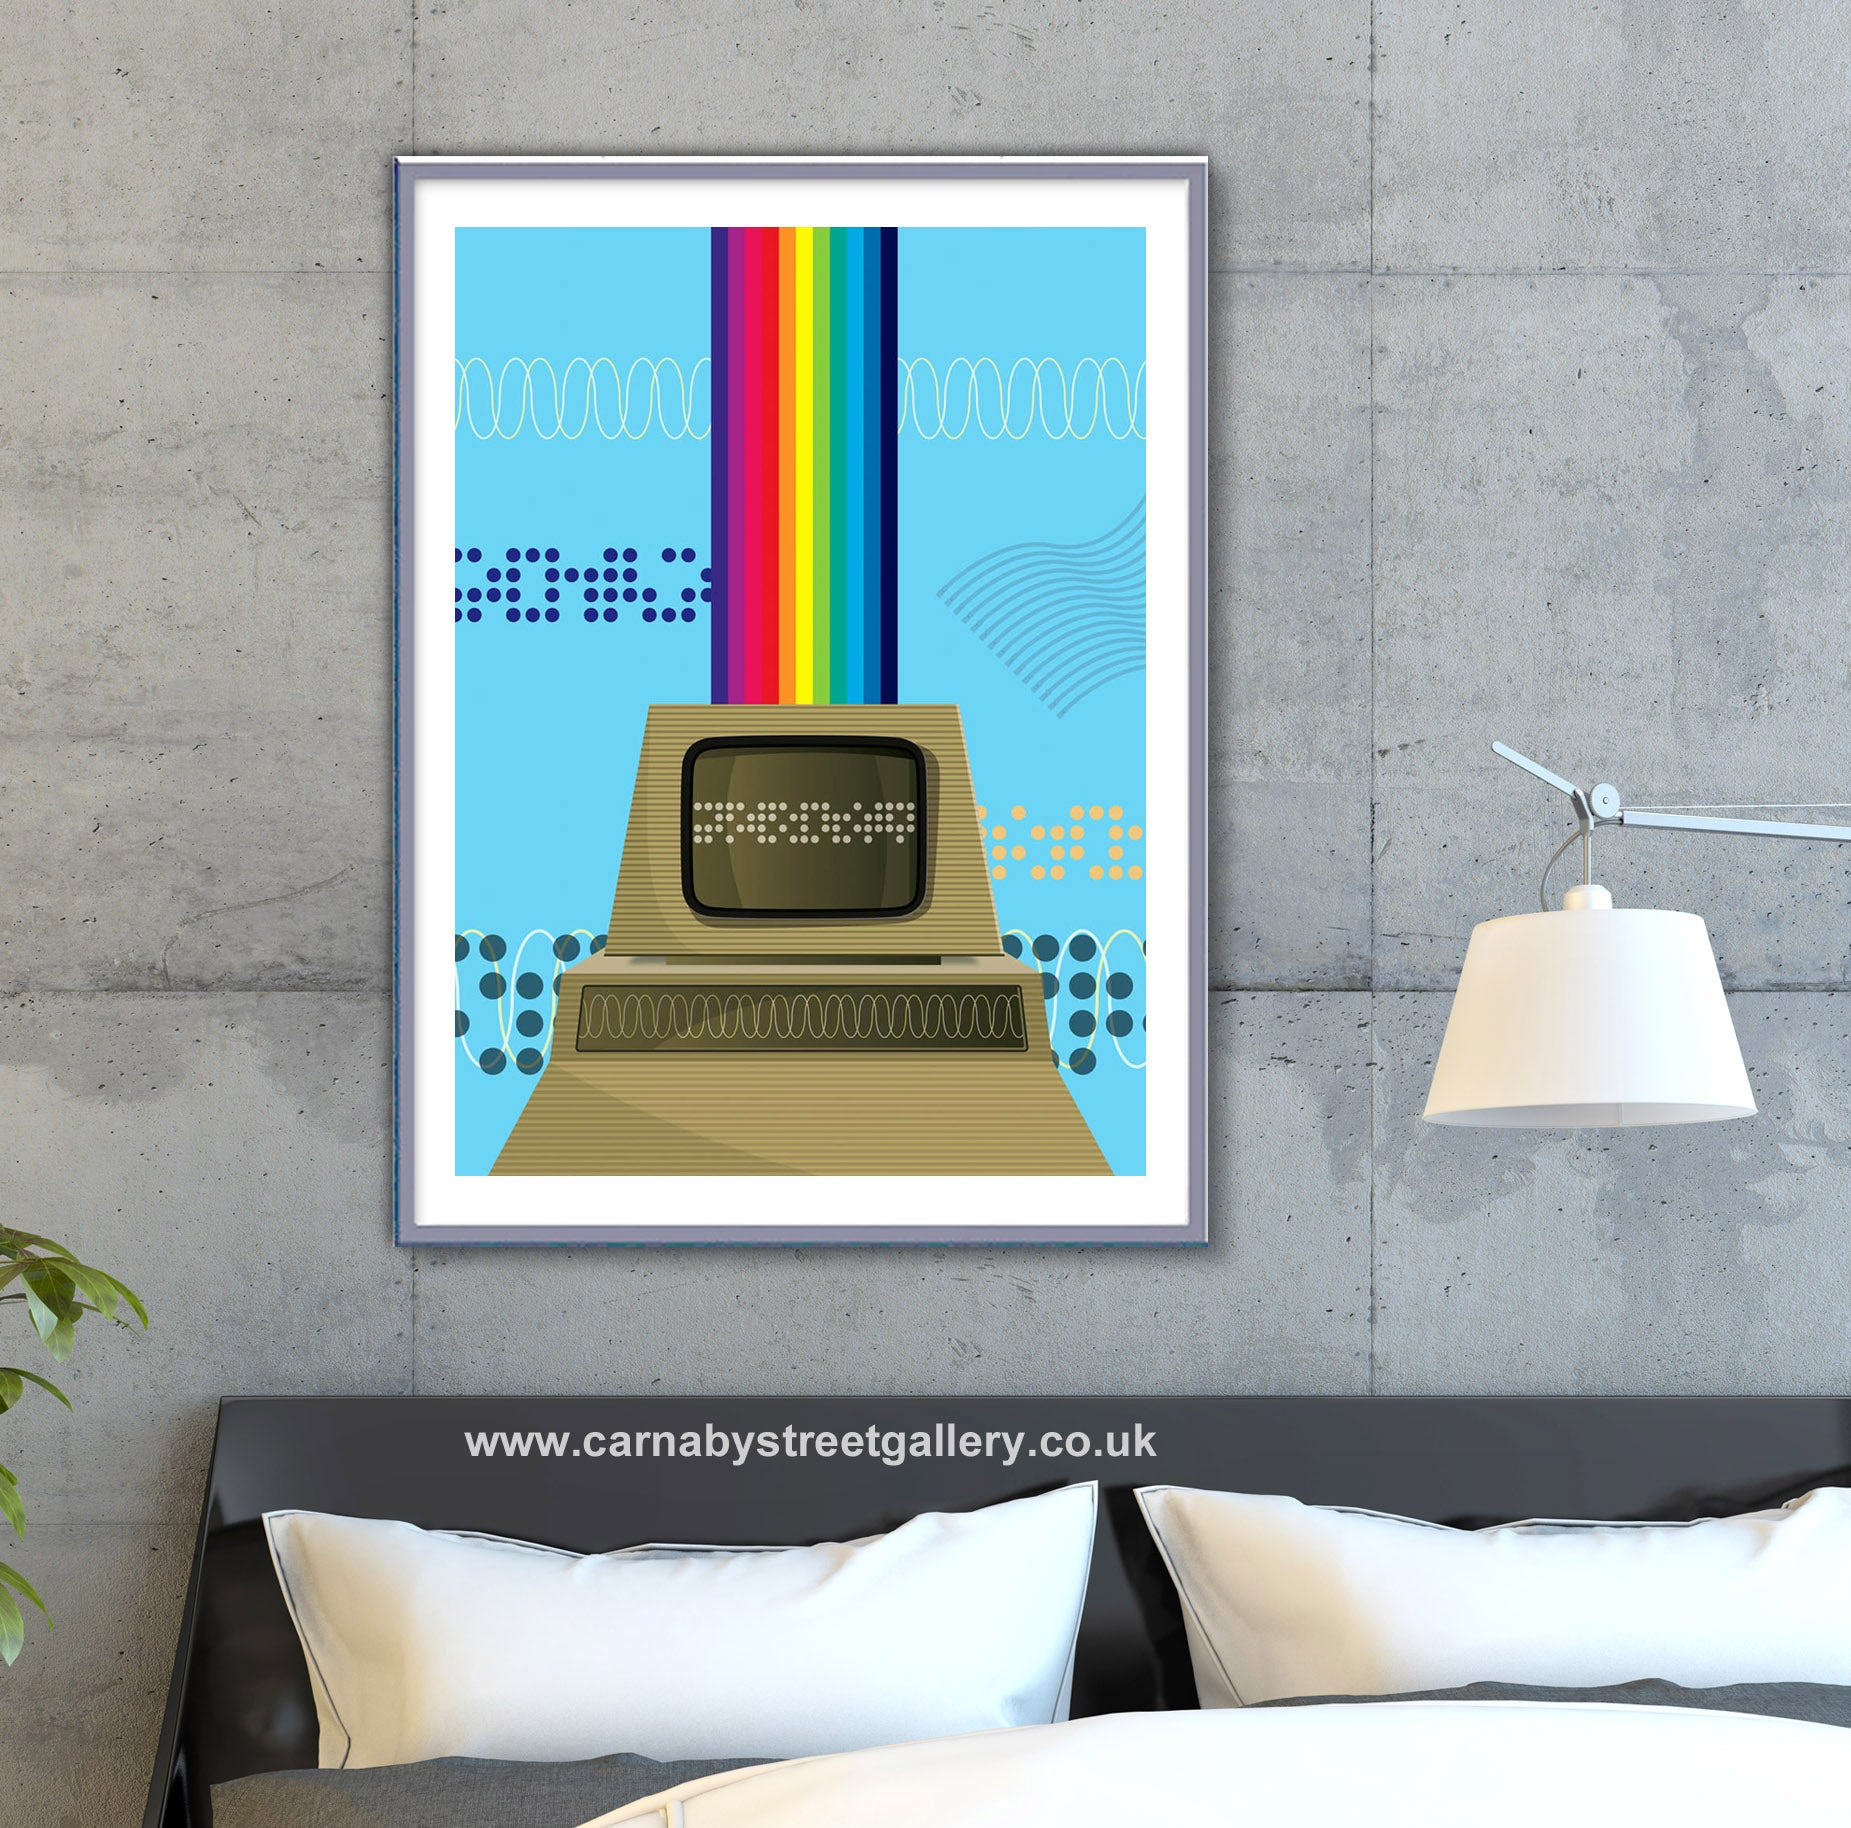 'Personal Computing!' retro PET computer display design illustration with rainbow colours in vintage blue gallery art print - 'Unframed'